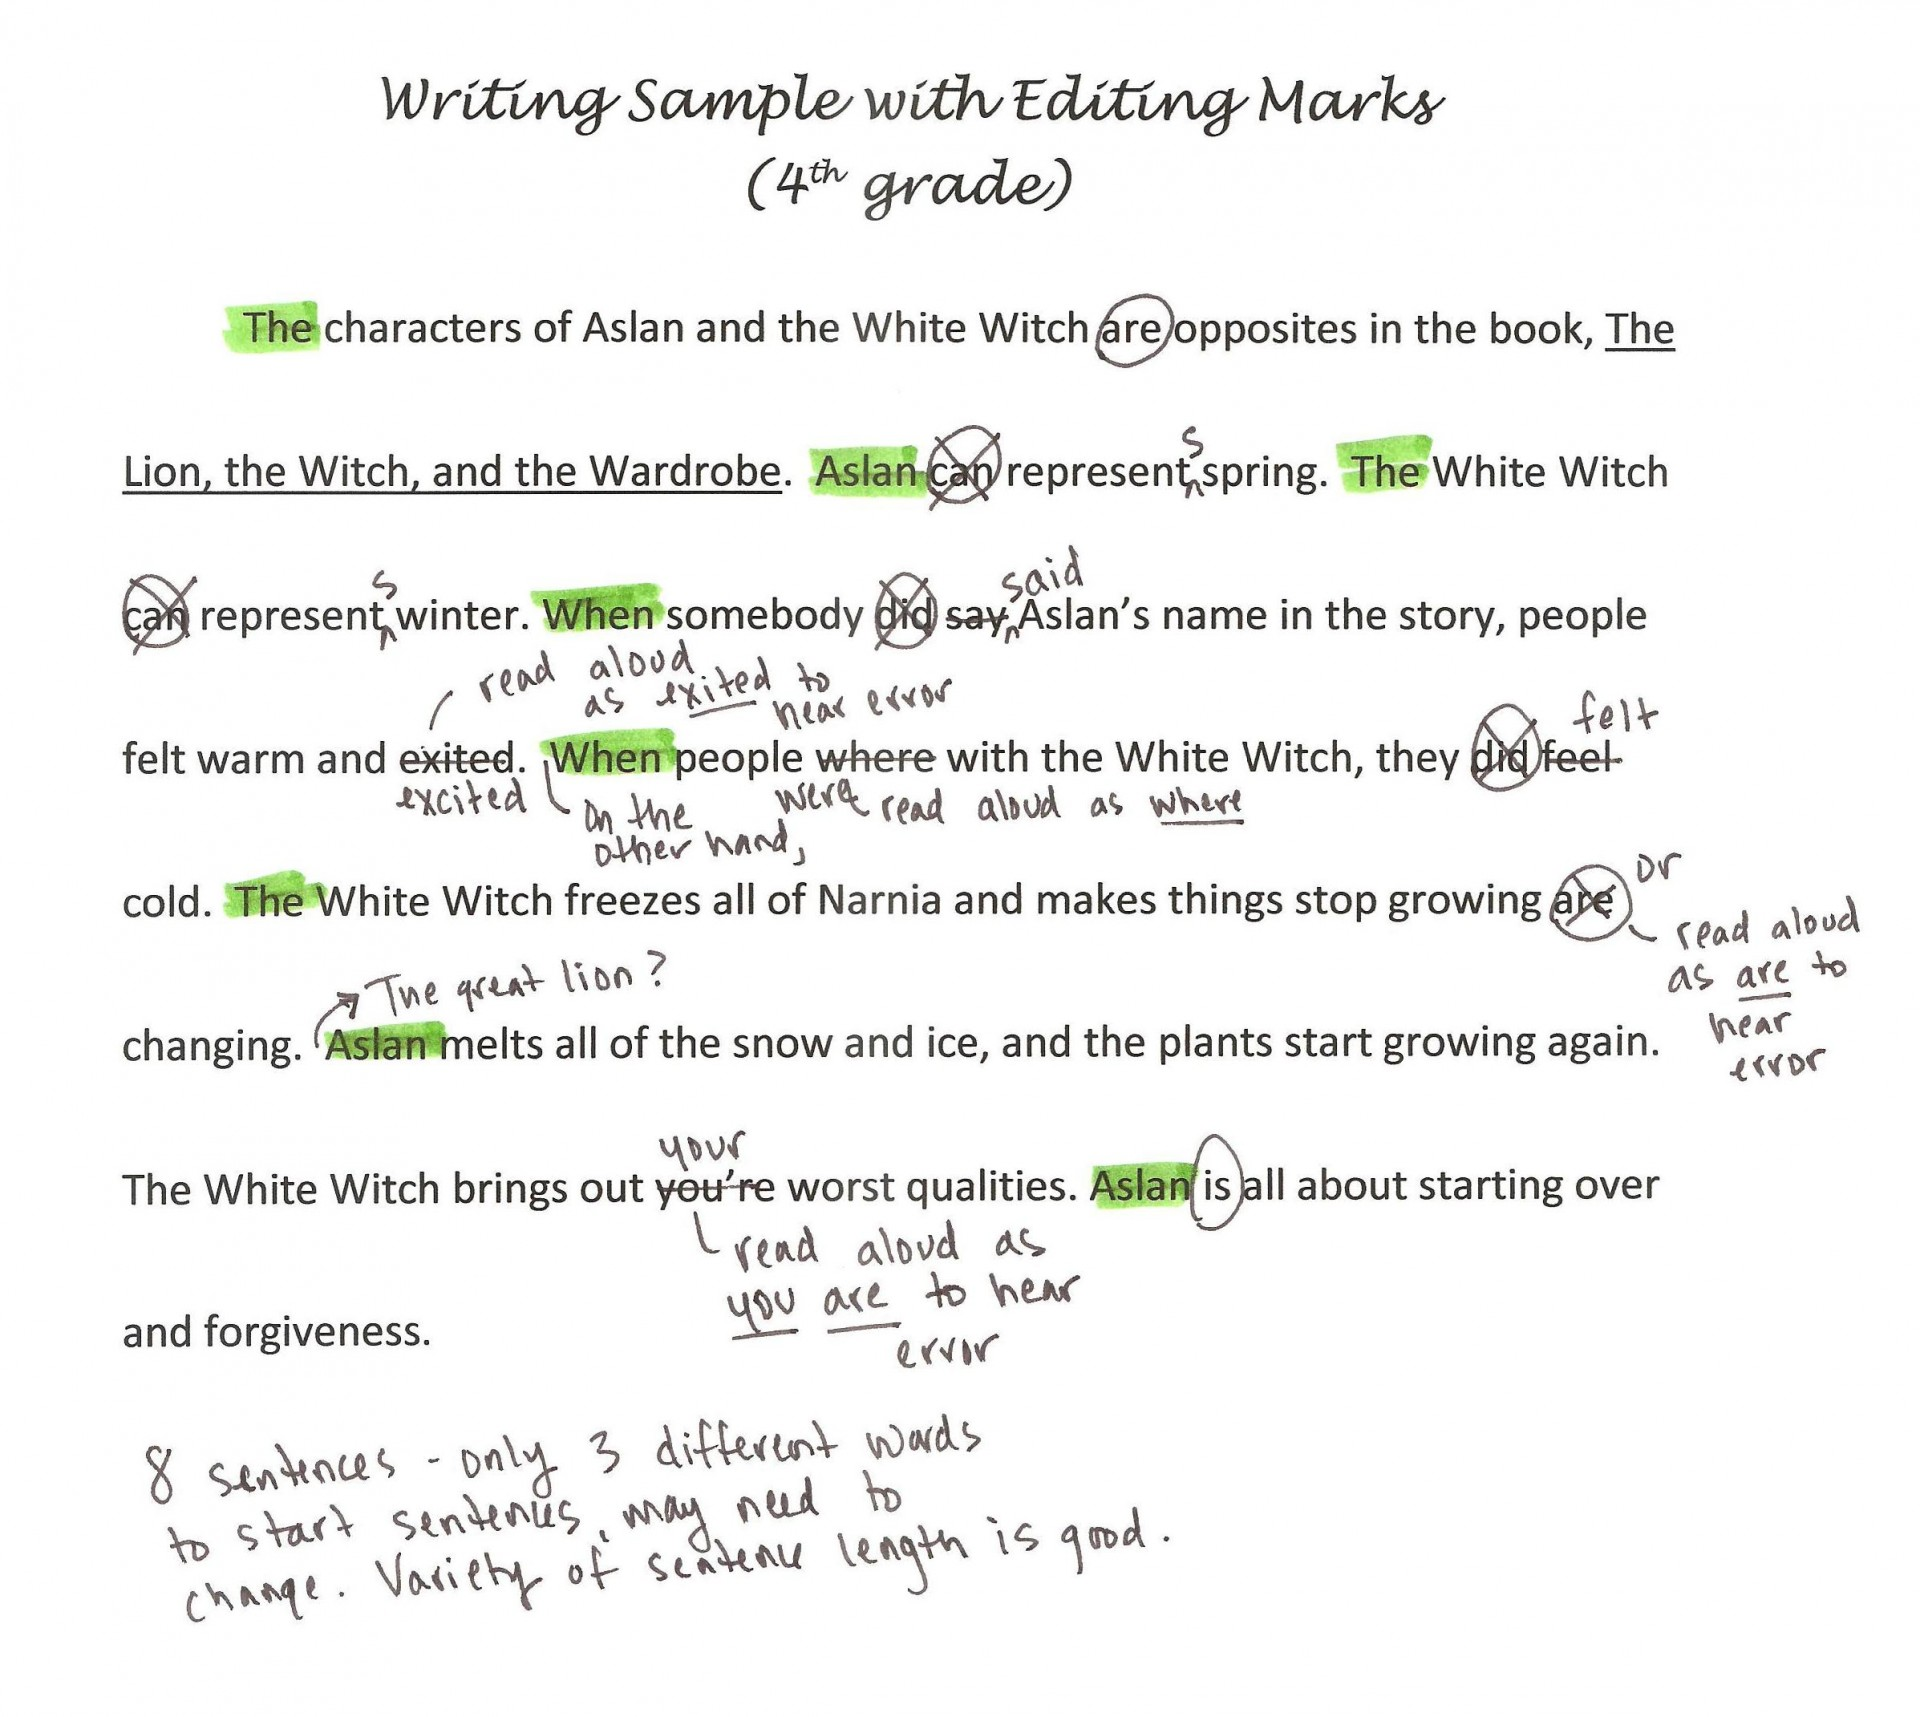 002 Writing Sample With Editing Marks1 Free Essay Checker For Grammar Incredible 1920